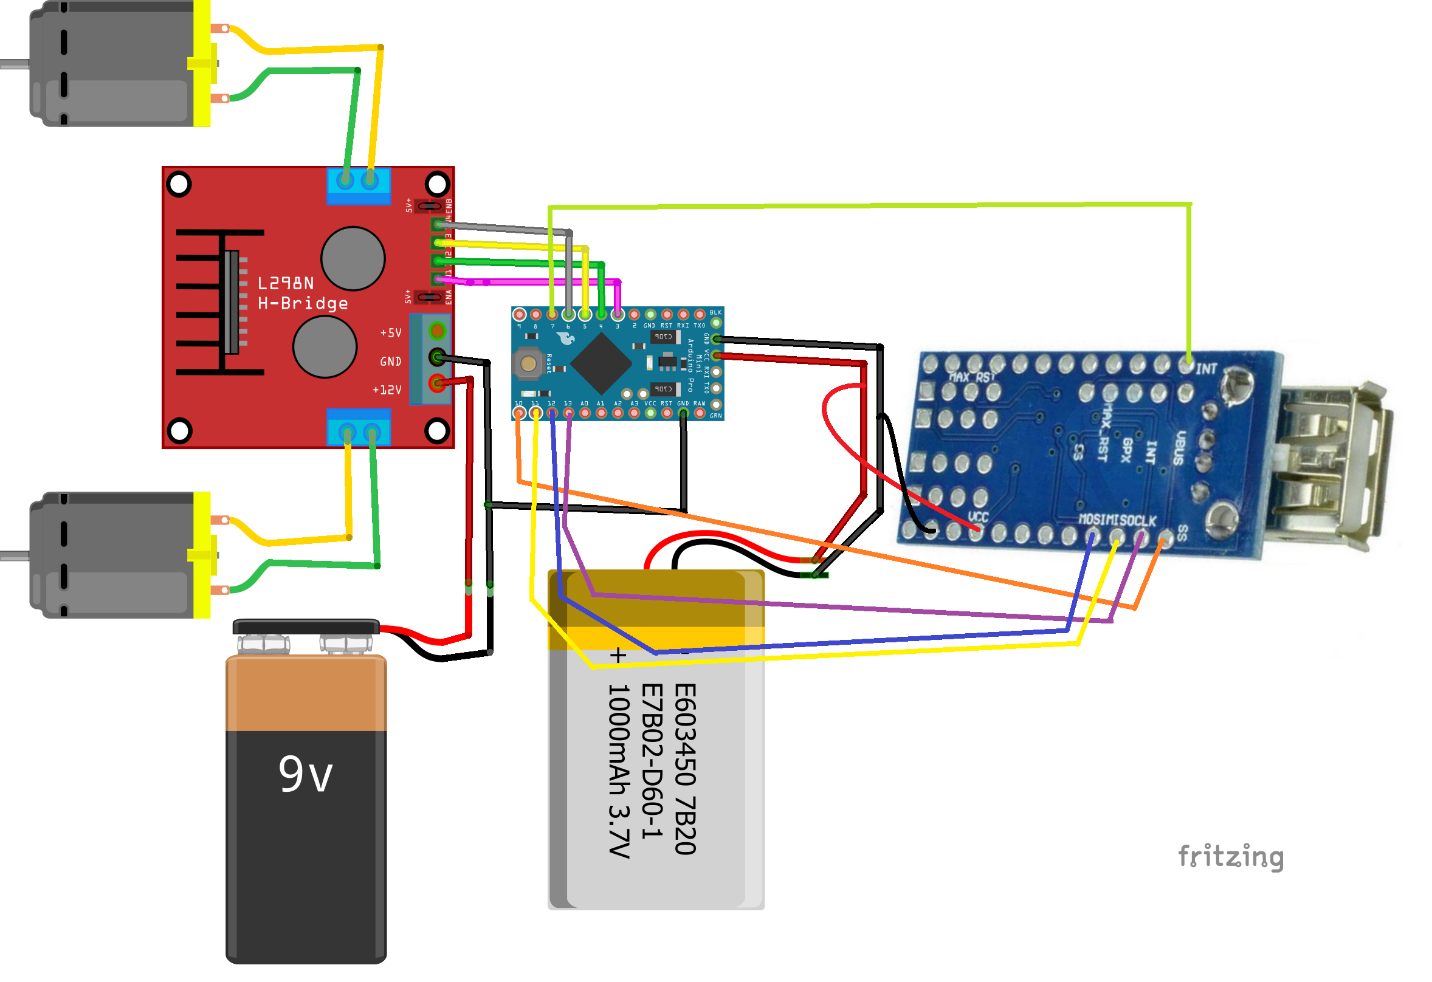 Fritzing diagram if you are not using an Arduino Mini or the shield setup.